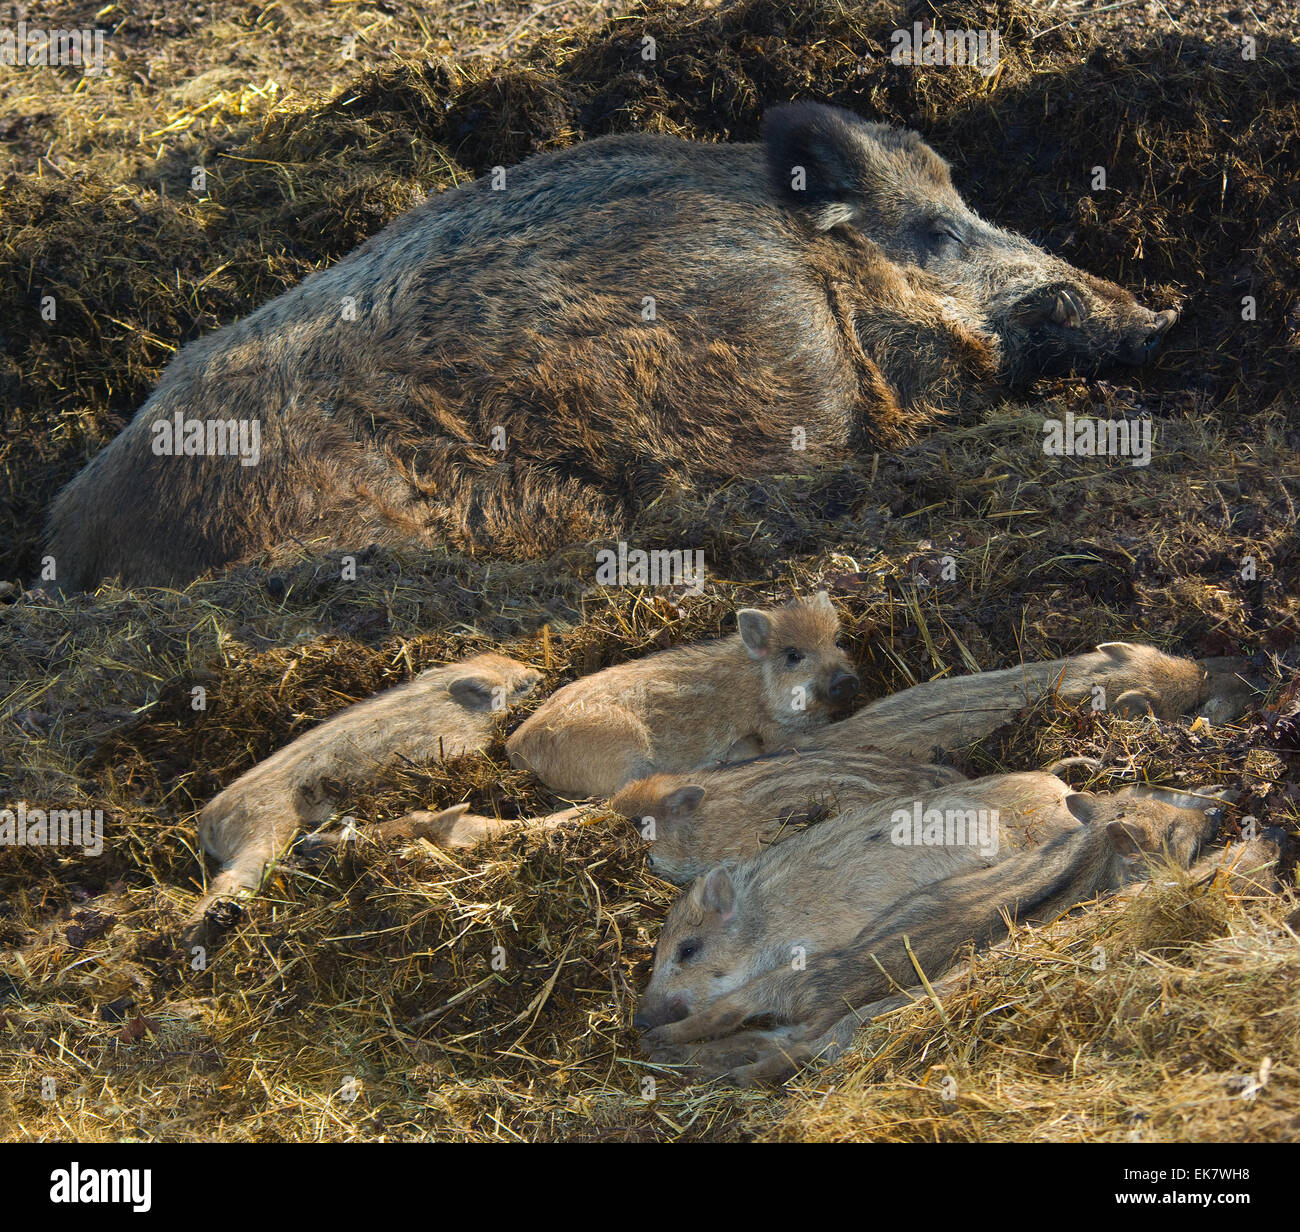 A family of wild boars with cubs resting.(Sus scrota). - Stock Image